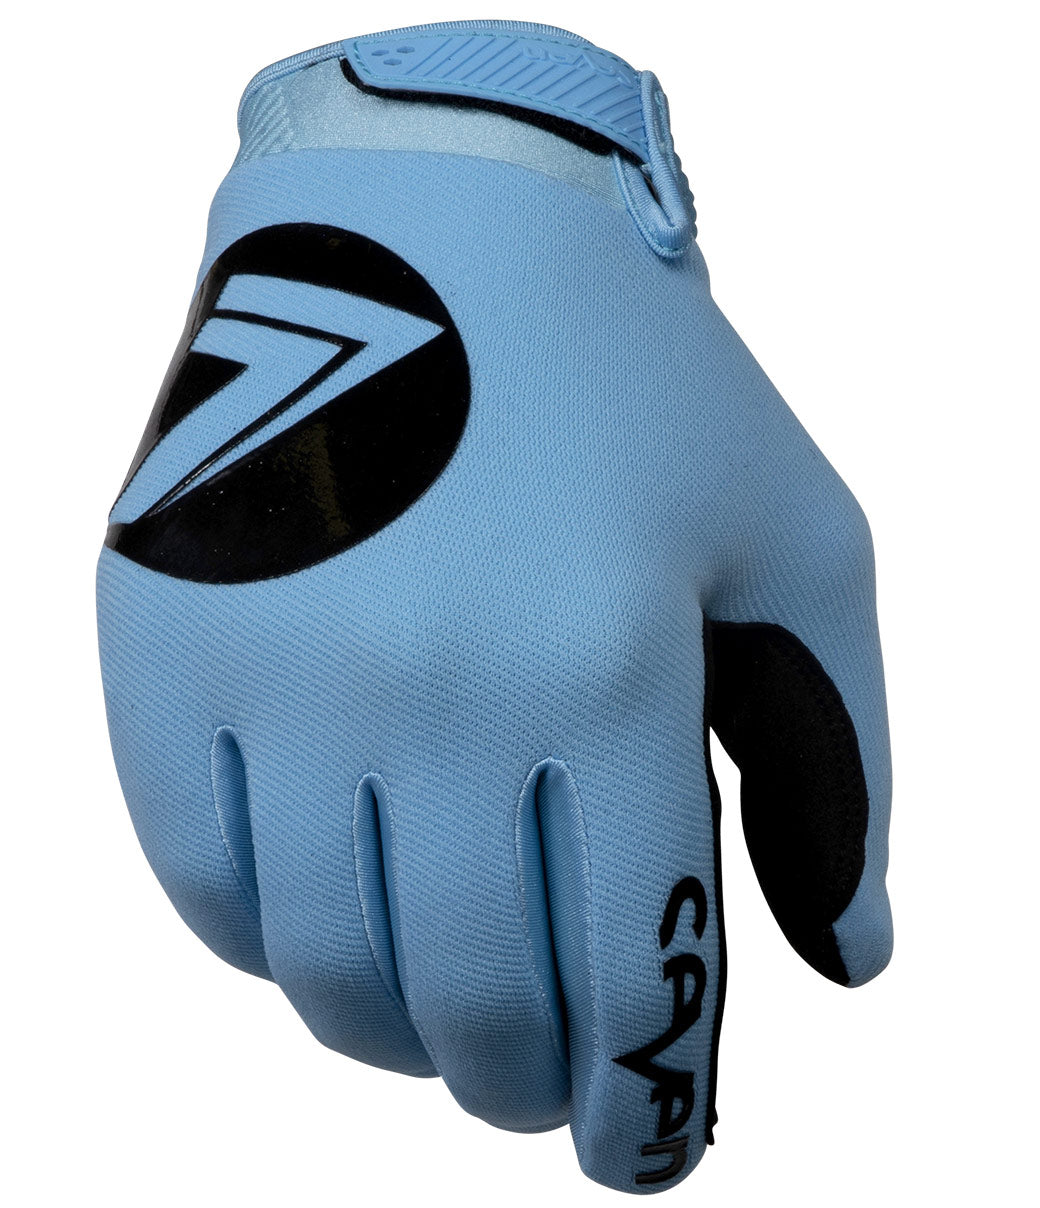 Annex 7 Dot Glove - Blue